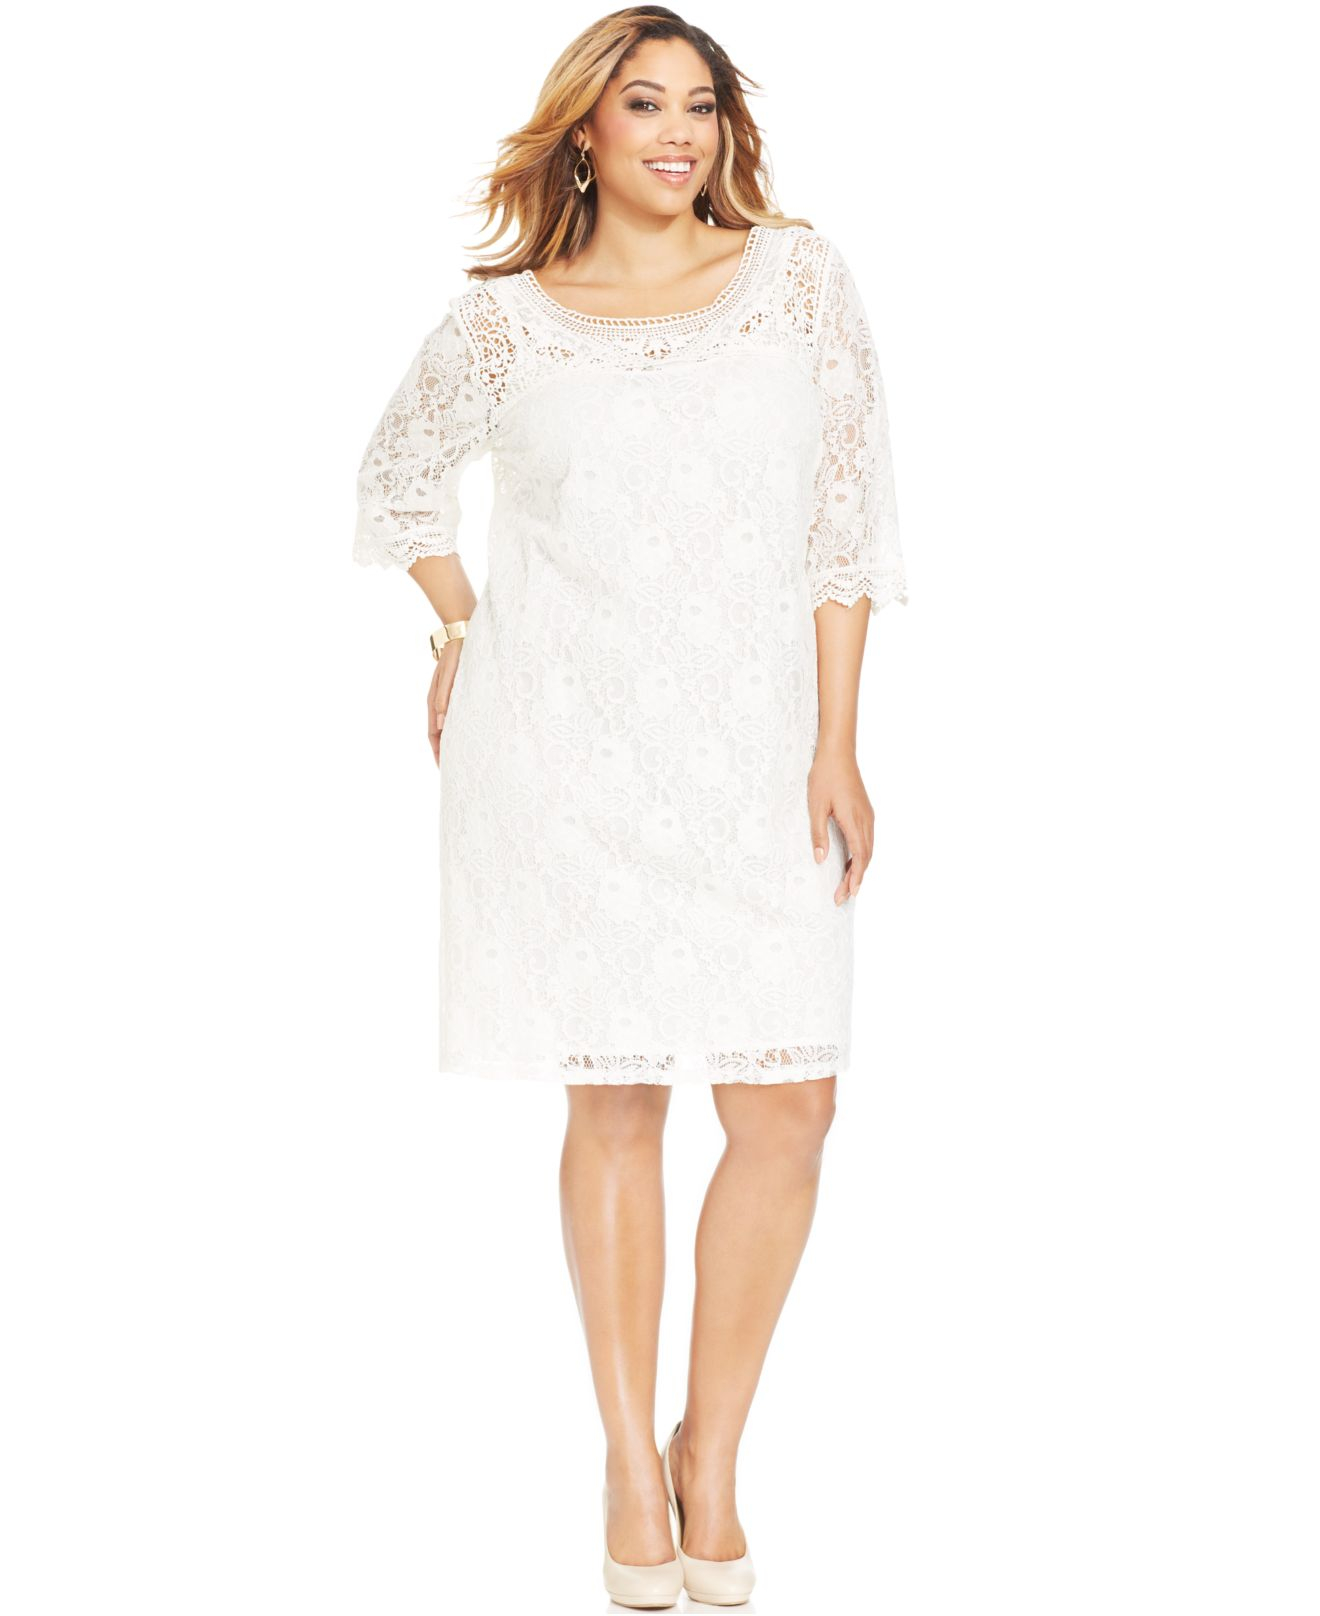 6423f864493 Plus Size White Lace Dress With Sleeves - Dress Foto and Picture